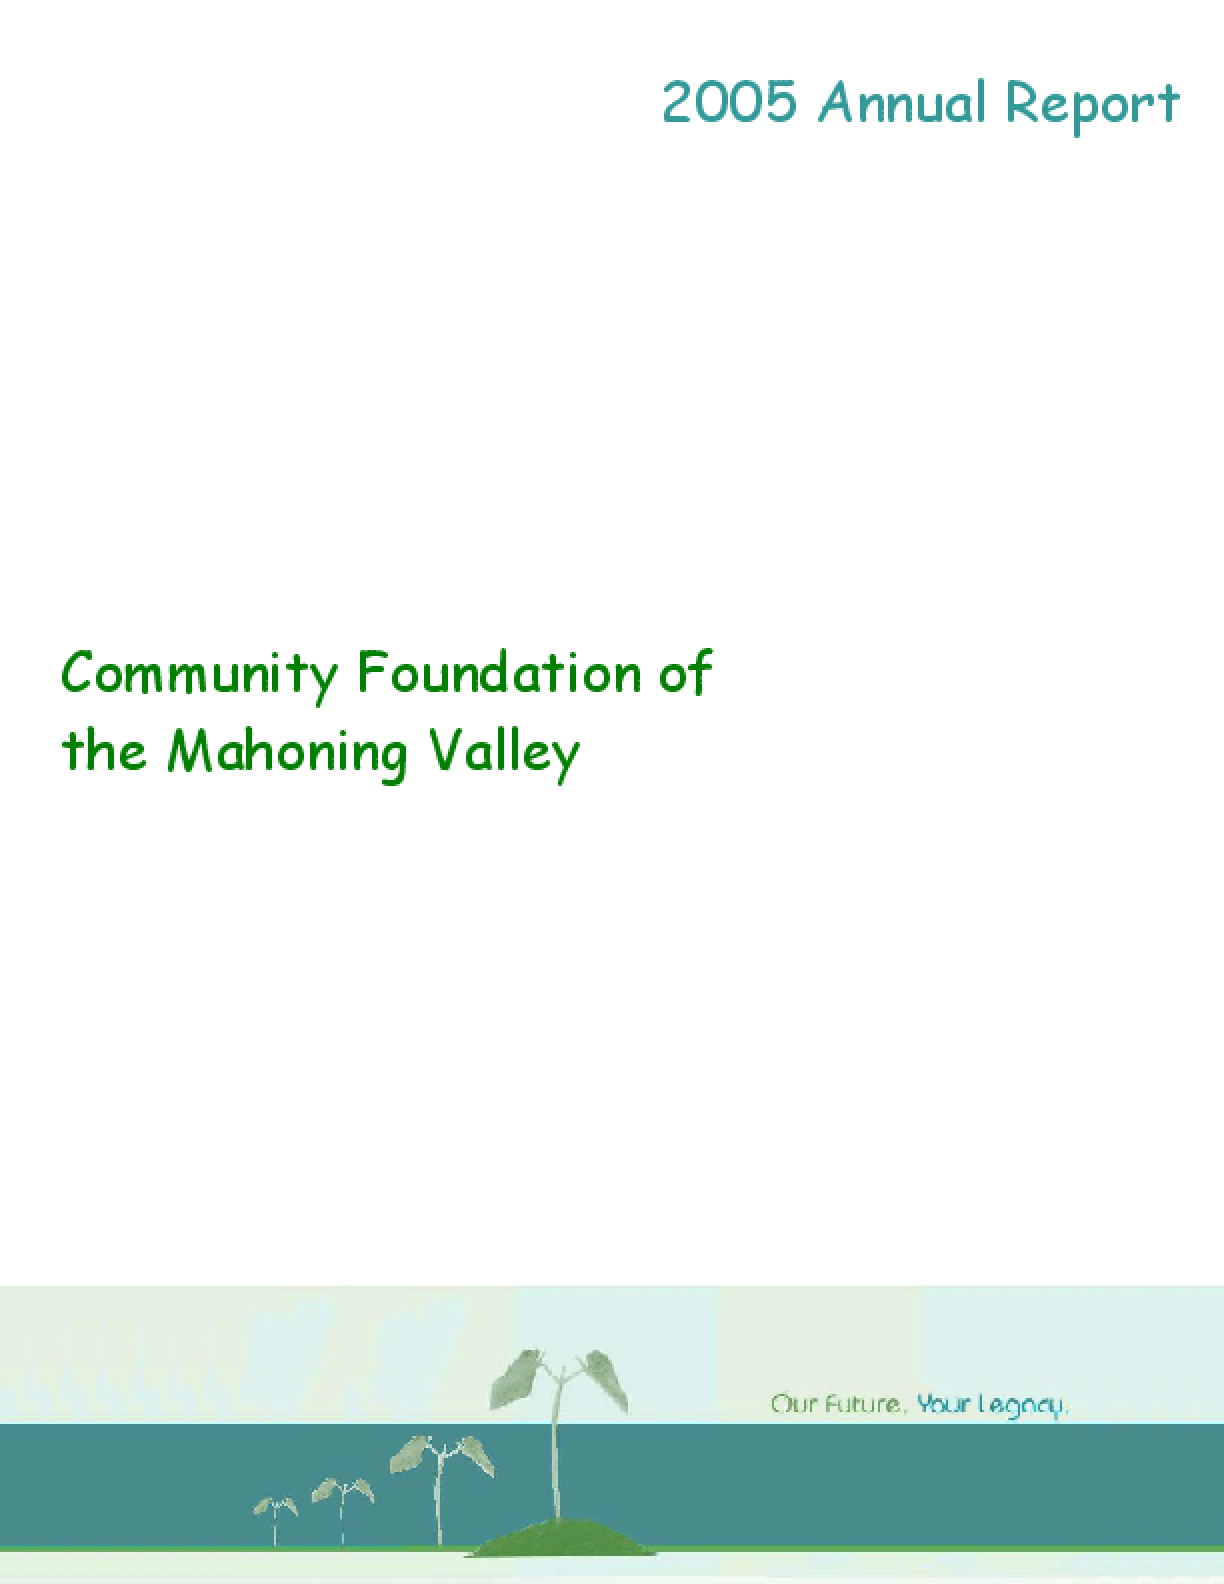 Community Foundation of the Mahoning Valley - 2005 Annual Report